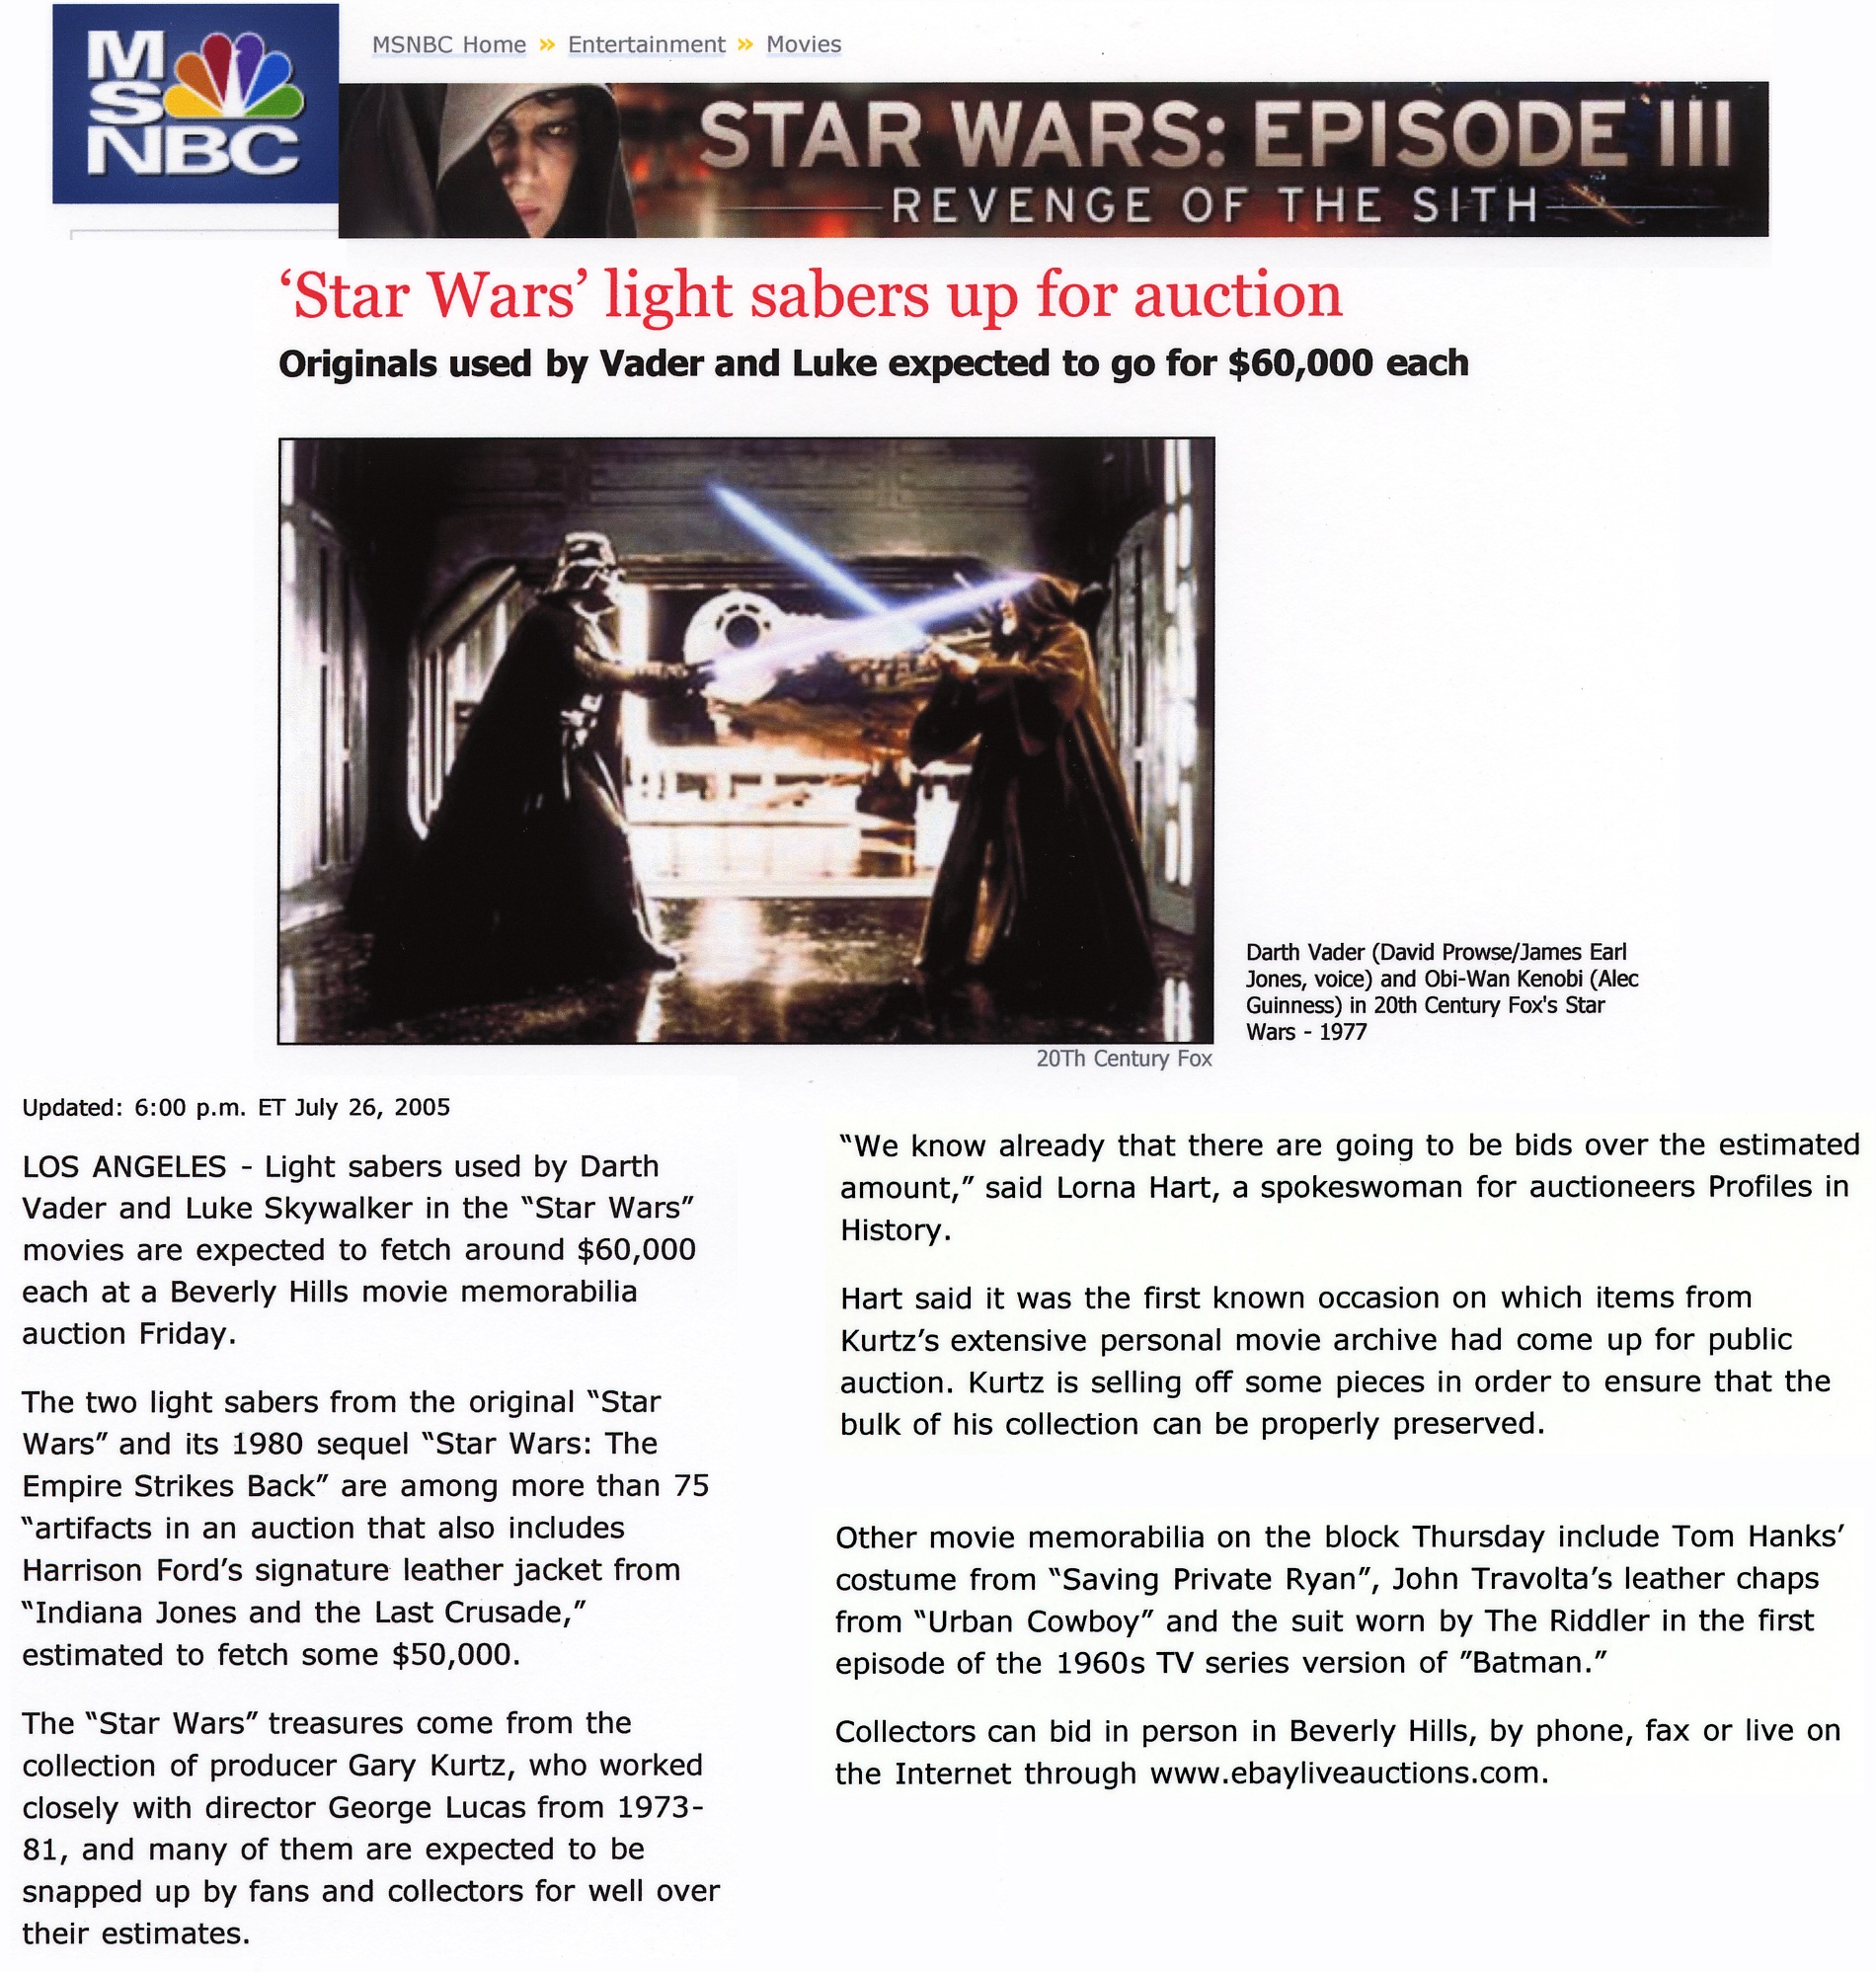 msnbc online article regarding star wars and light saber up for aution